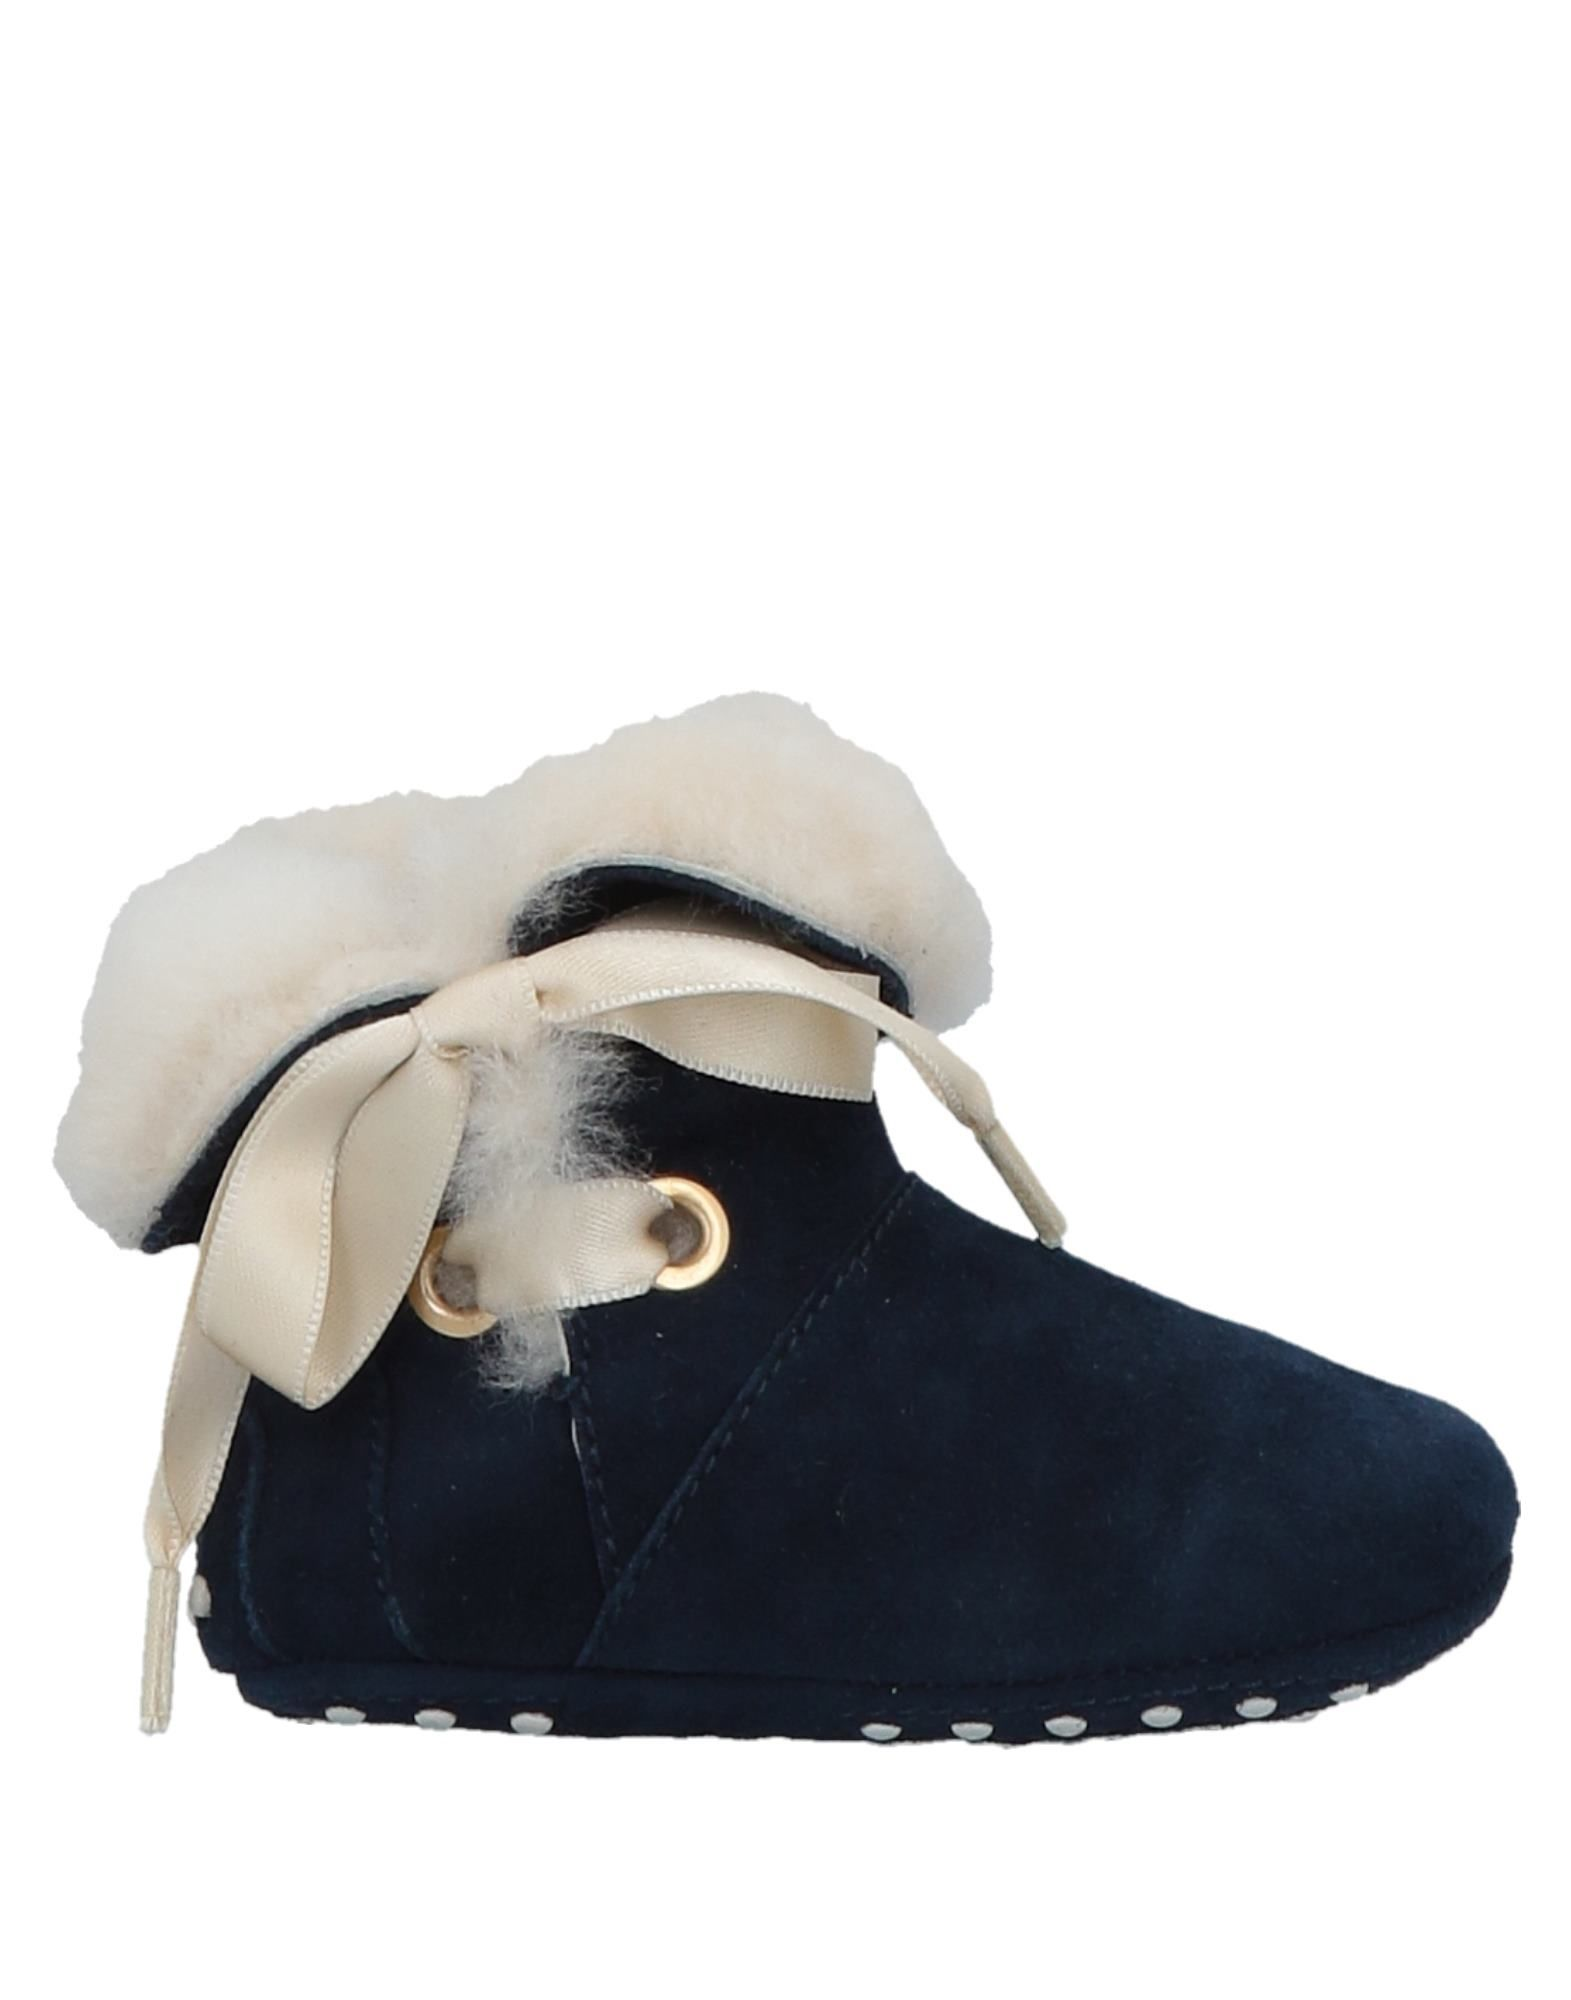 TOD'S   TOD'S Ankle Boots 11674499   Goxip